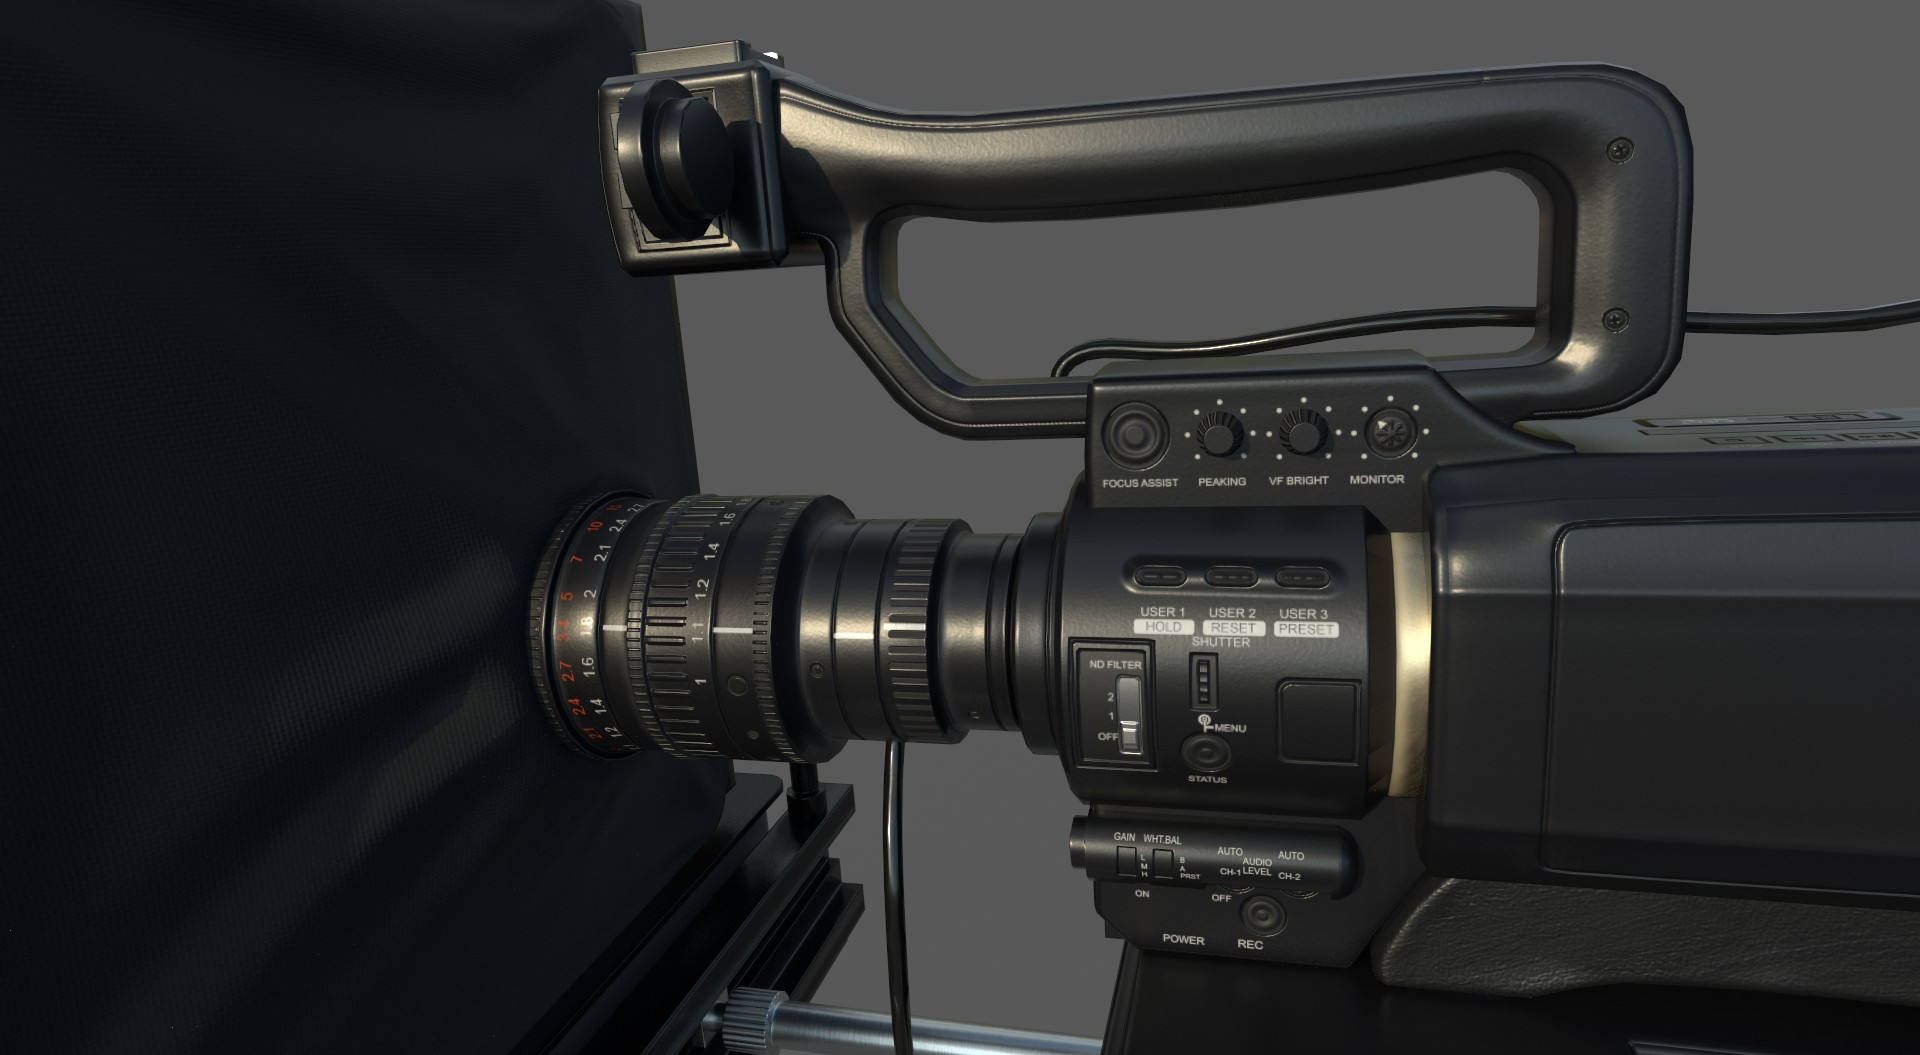 NewsroomCamera_14.jpg